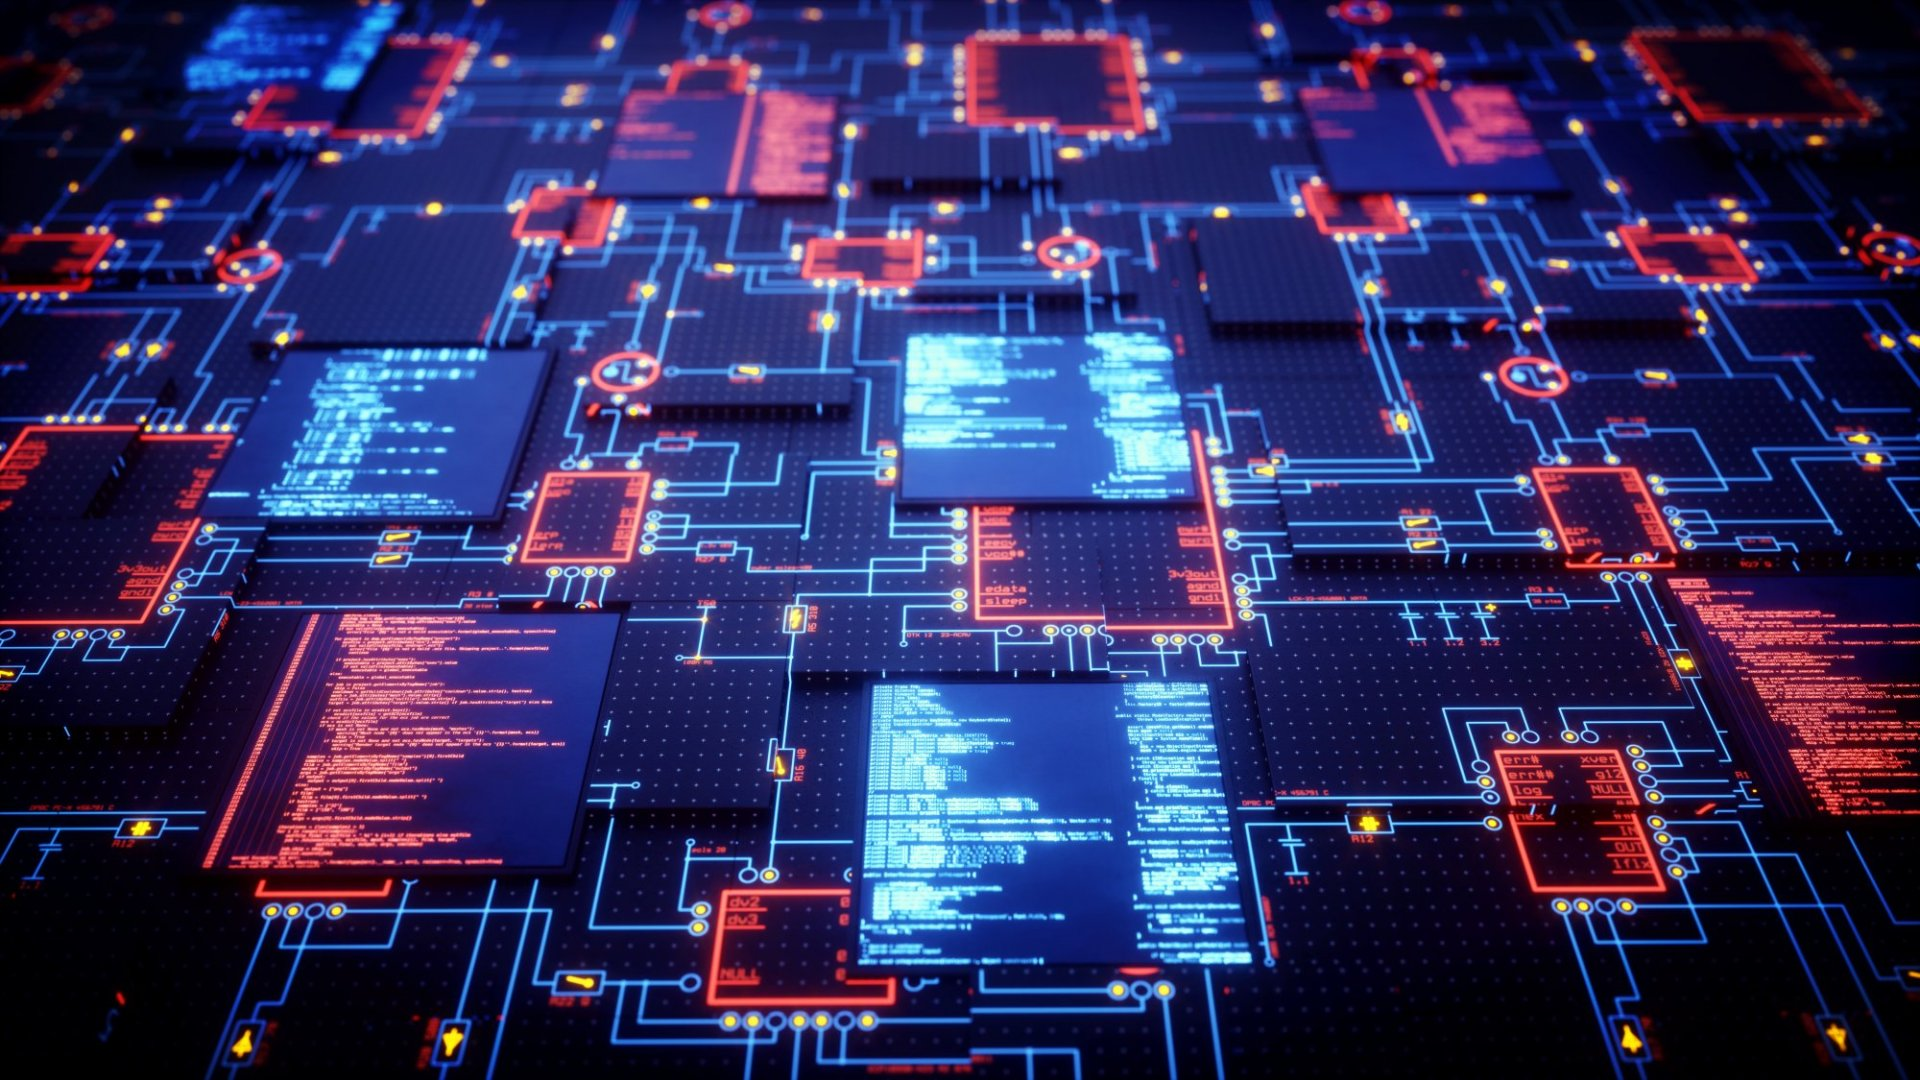 5 Cybersecurity Trends to Watch in 2018